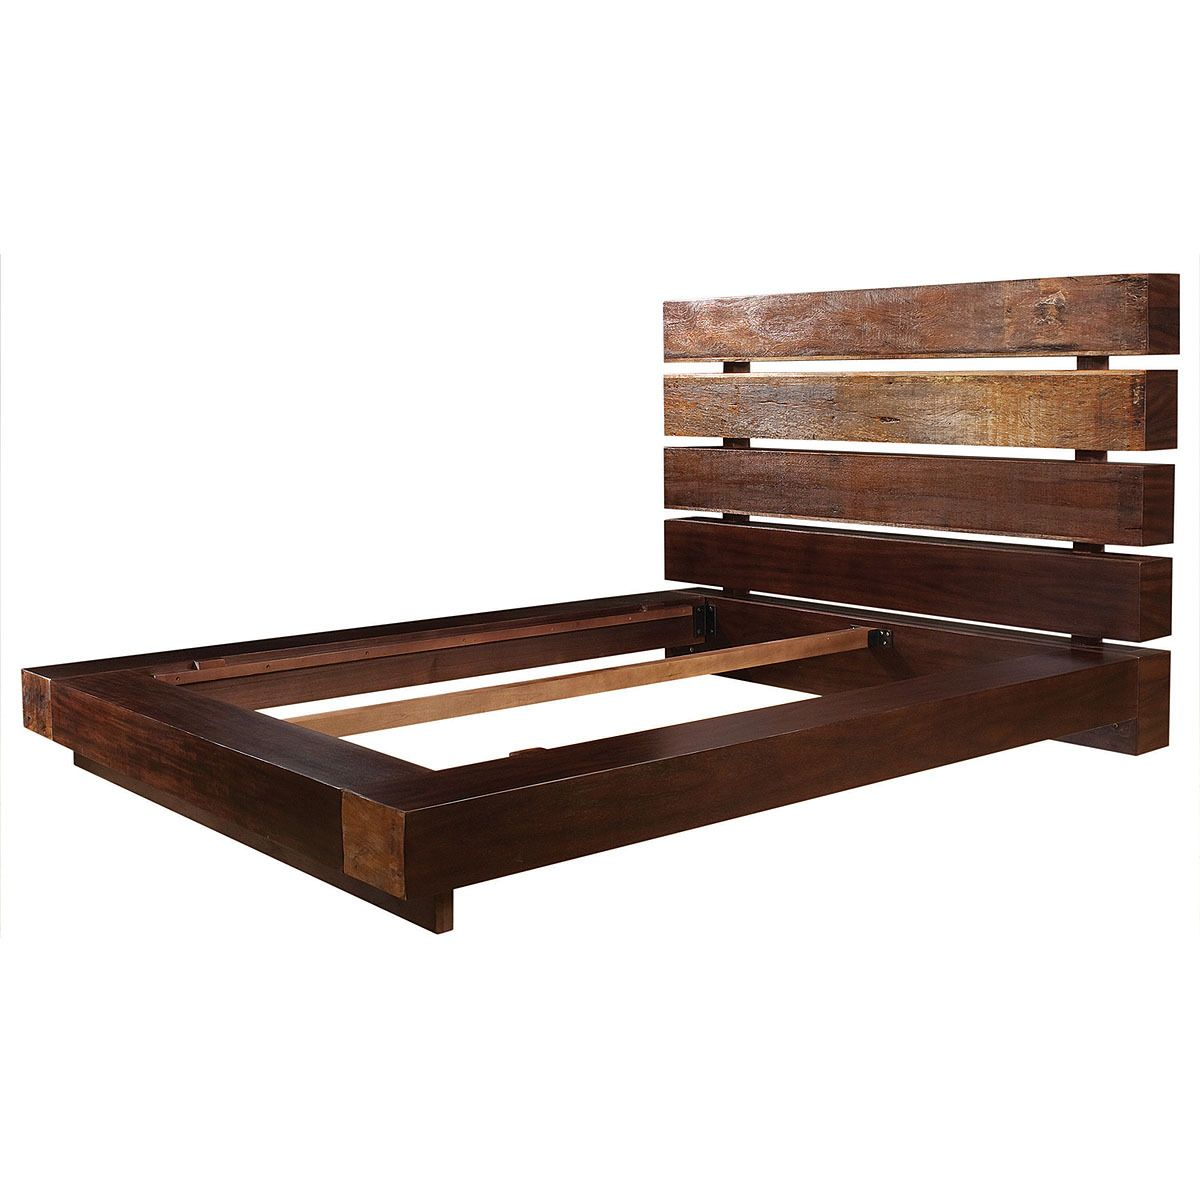 Iggy King Platform Bed Frame | For the Home | Pinterest | King ...